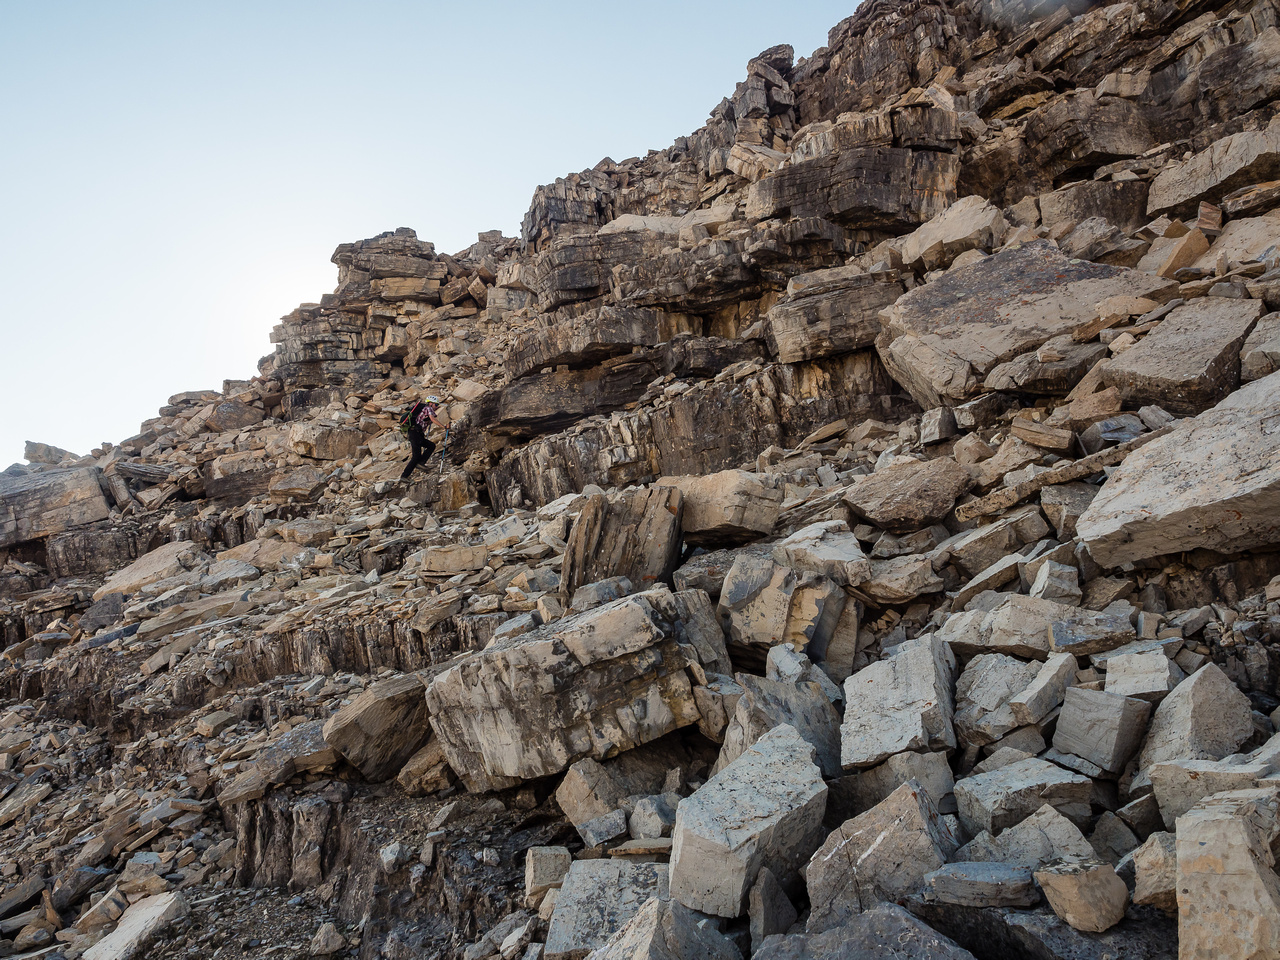 Find Phil in this giant's playground of rock and boulders.